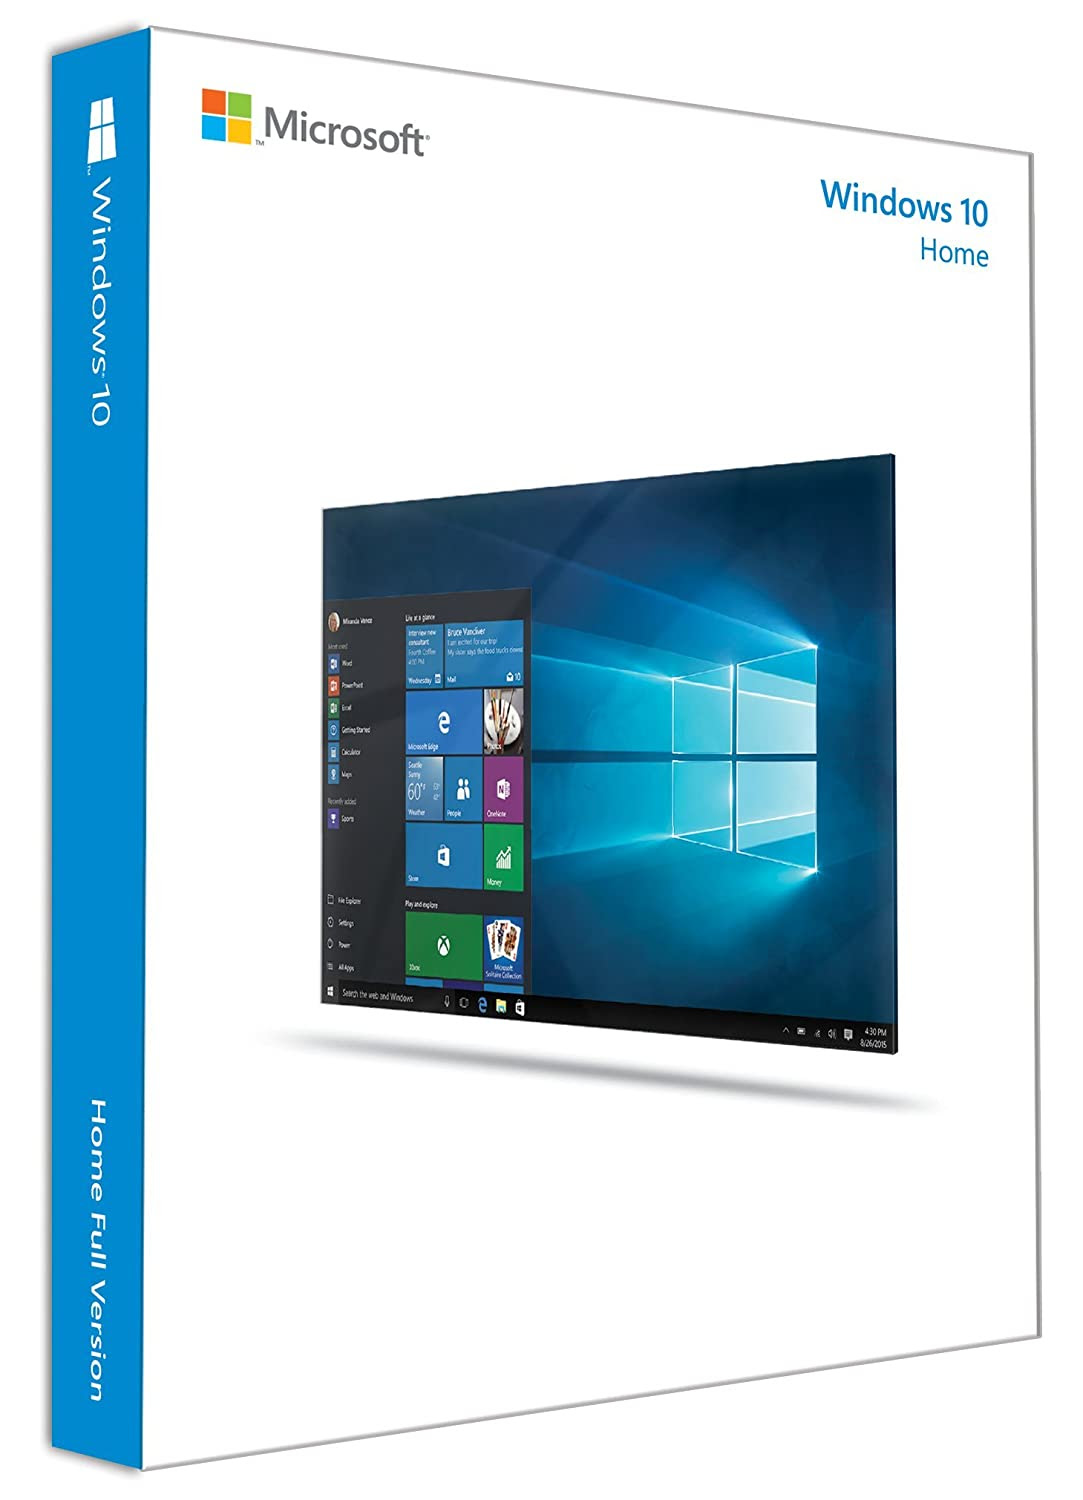 Deals on Microsoft Windows 10 Home 32Bit/64Bit English INTL for 1 PC/ User: 32 and 64 Bits on USB 3.0 Included - Full Retail Pack